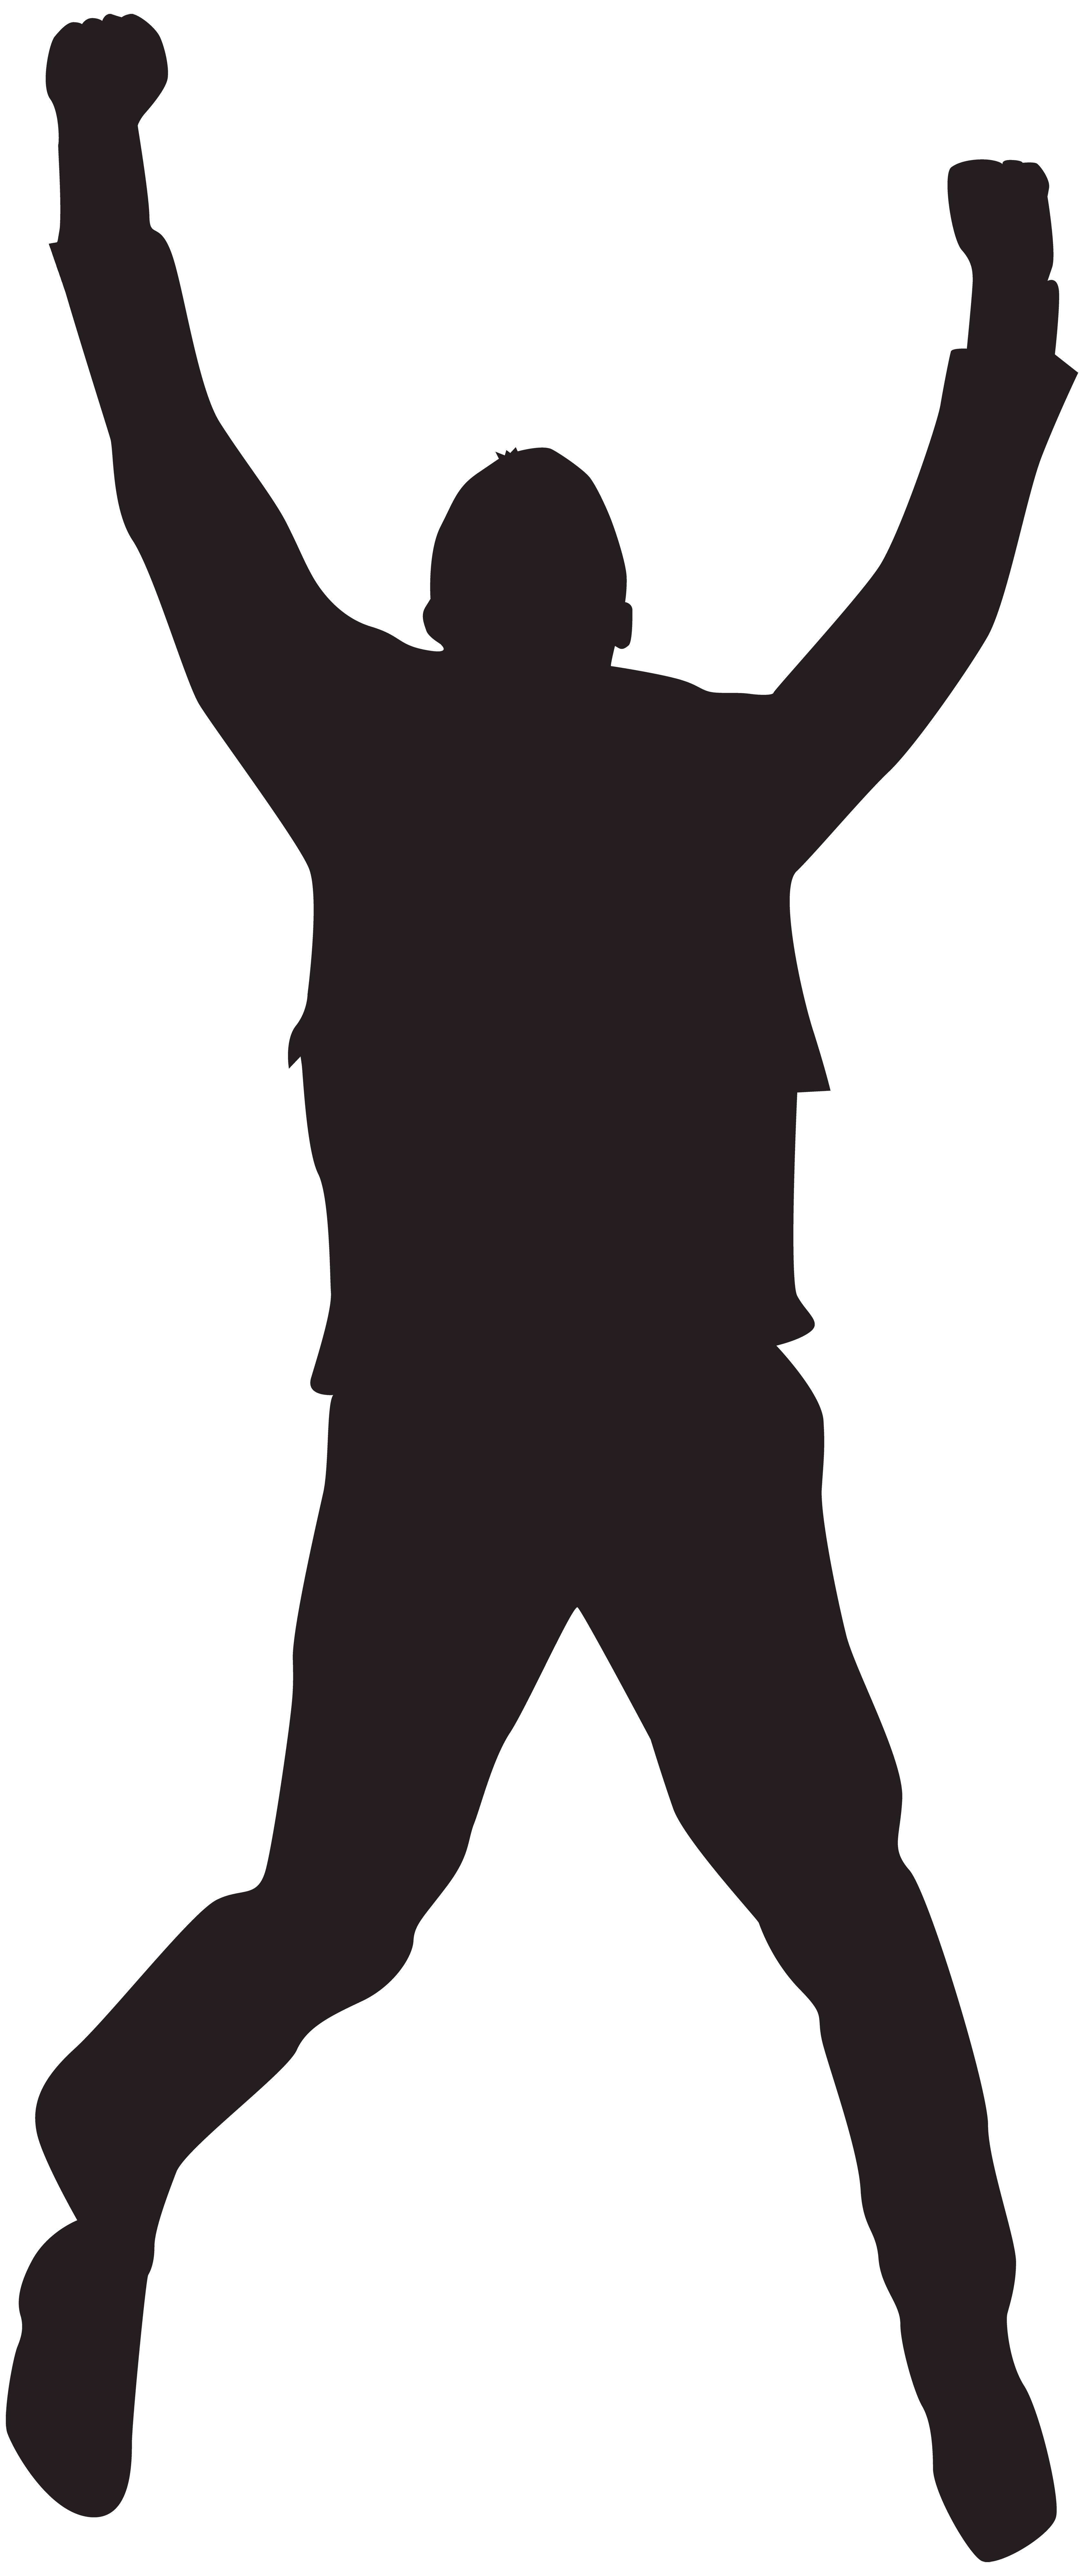 Jumping happy man silhouette. Happiness clipart happine